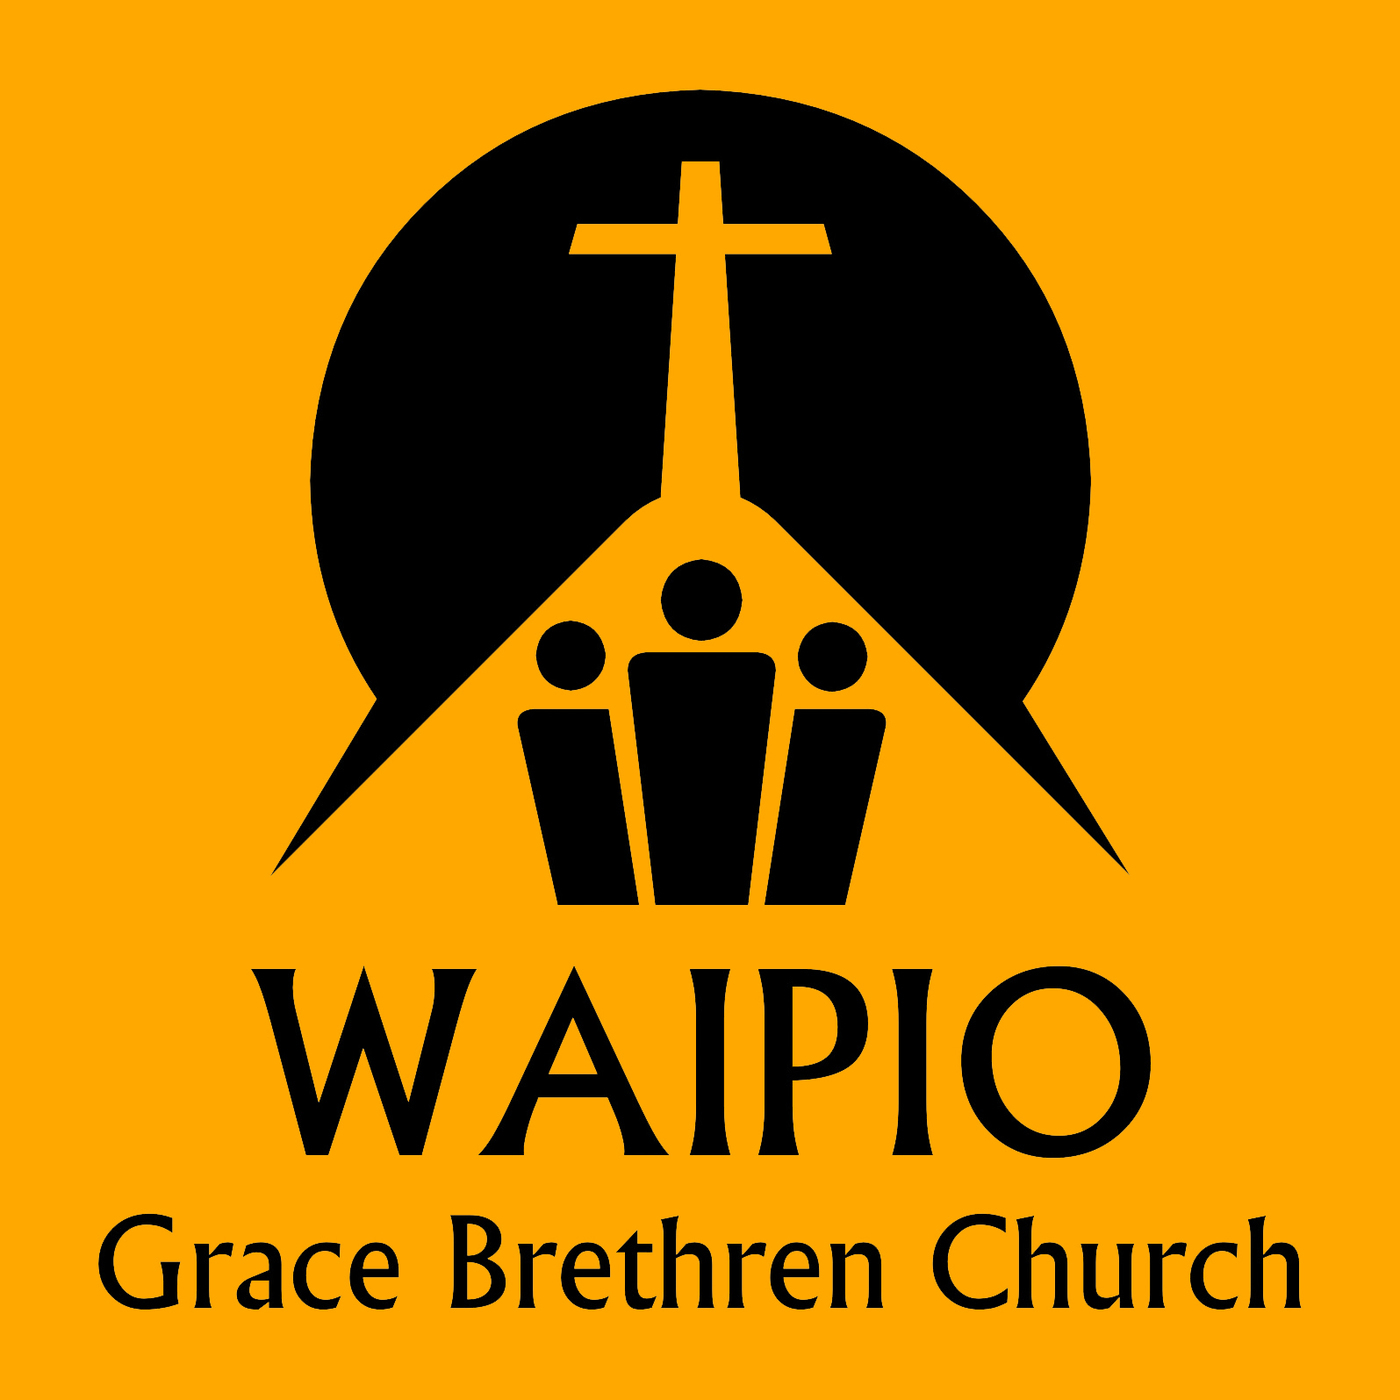 Waipio Grace Brethren Church